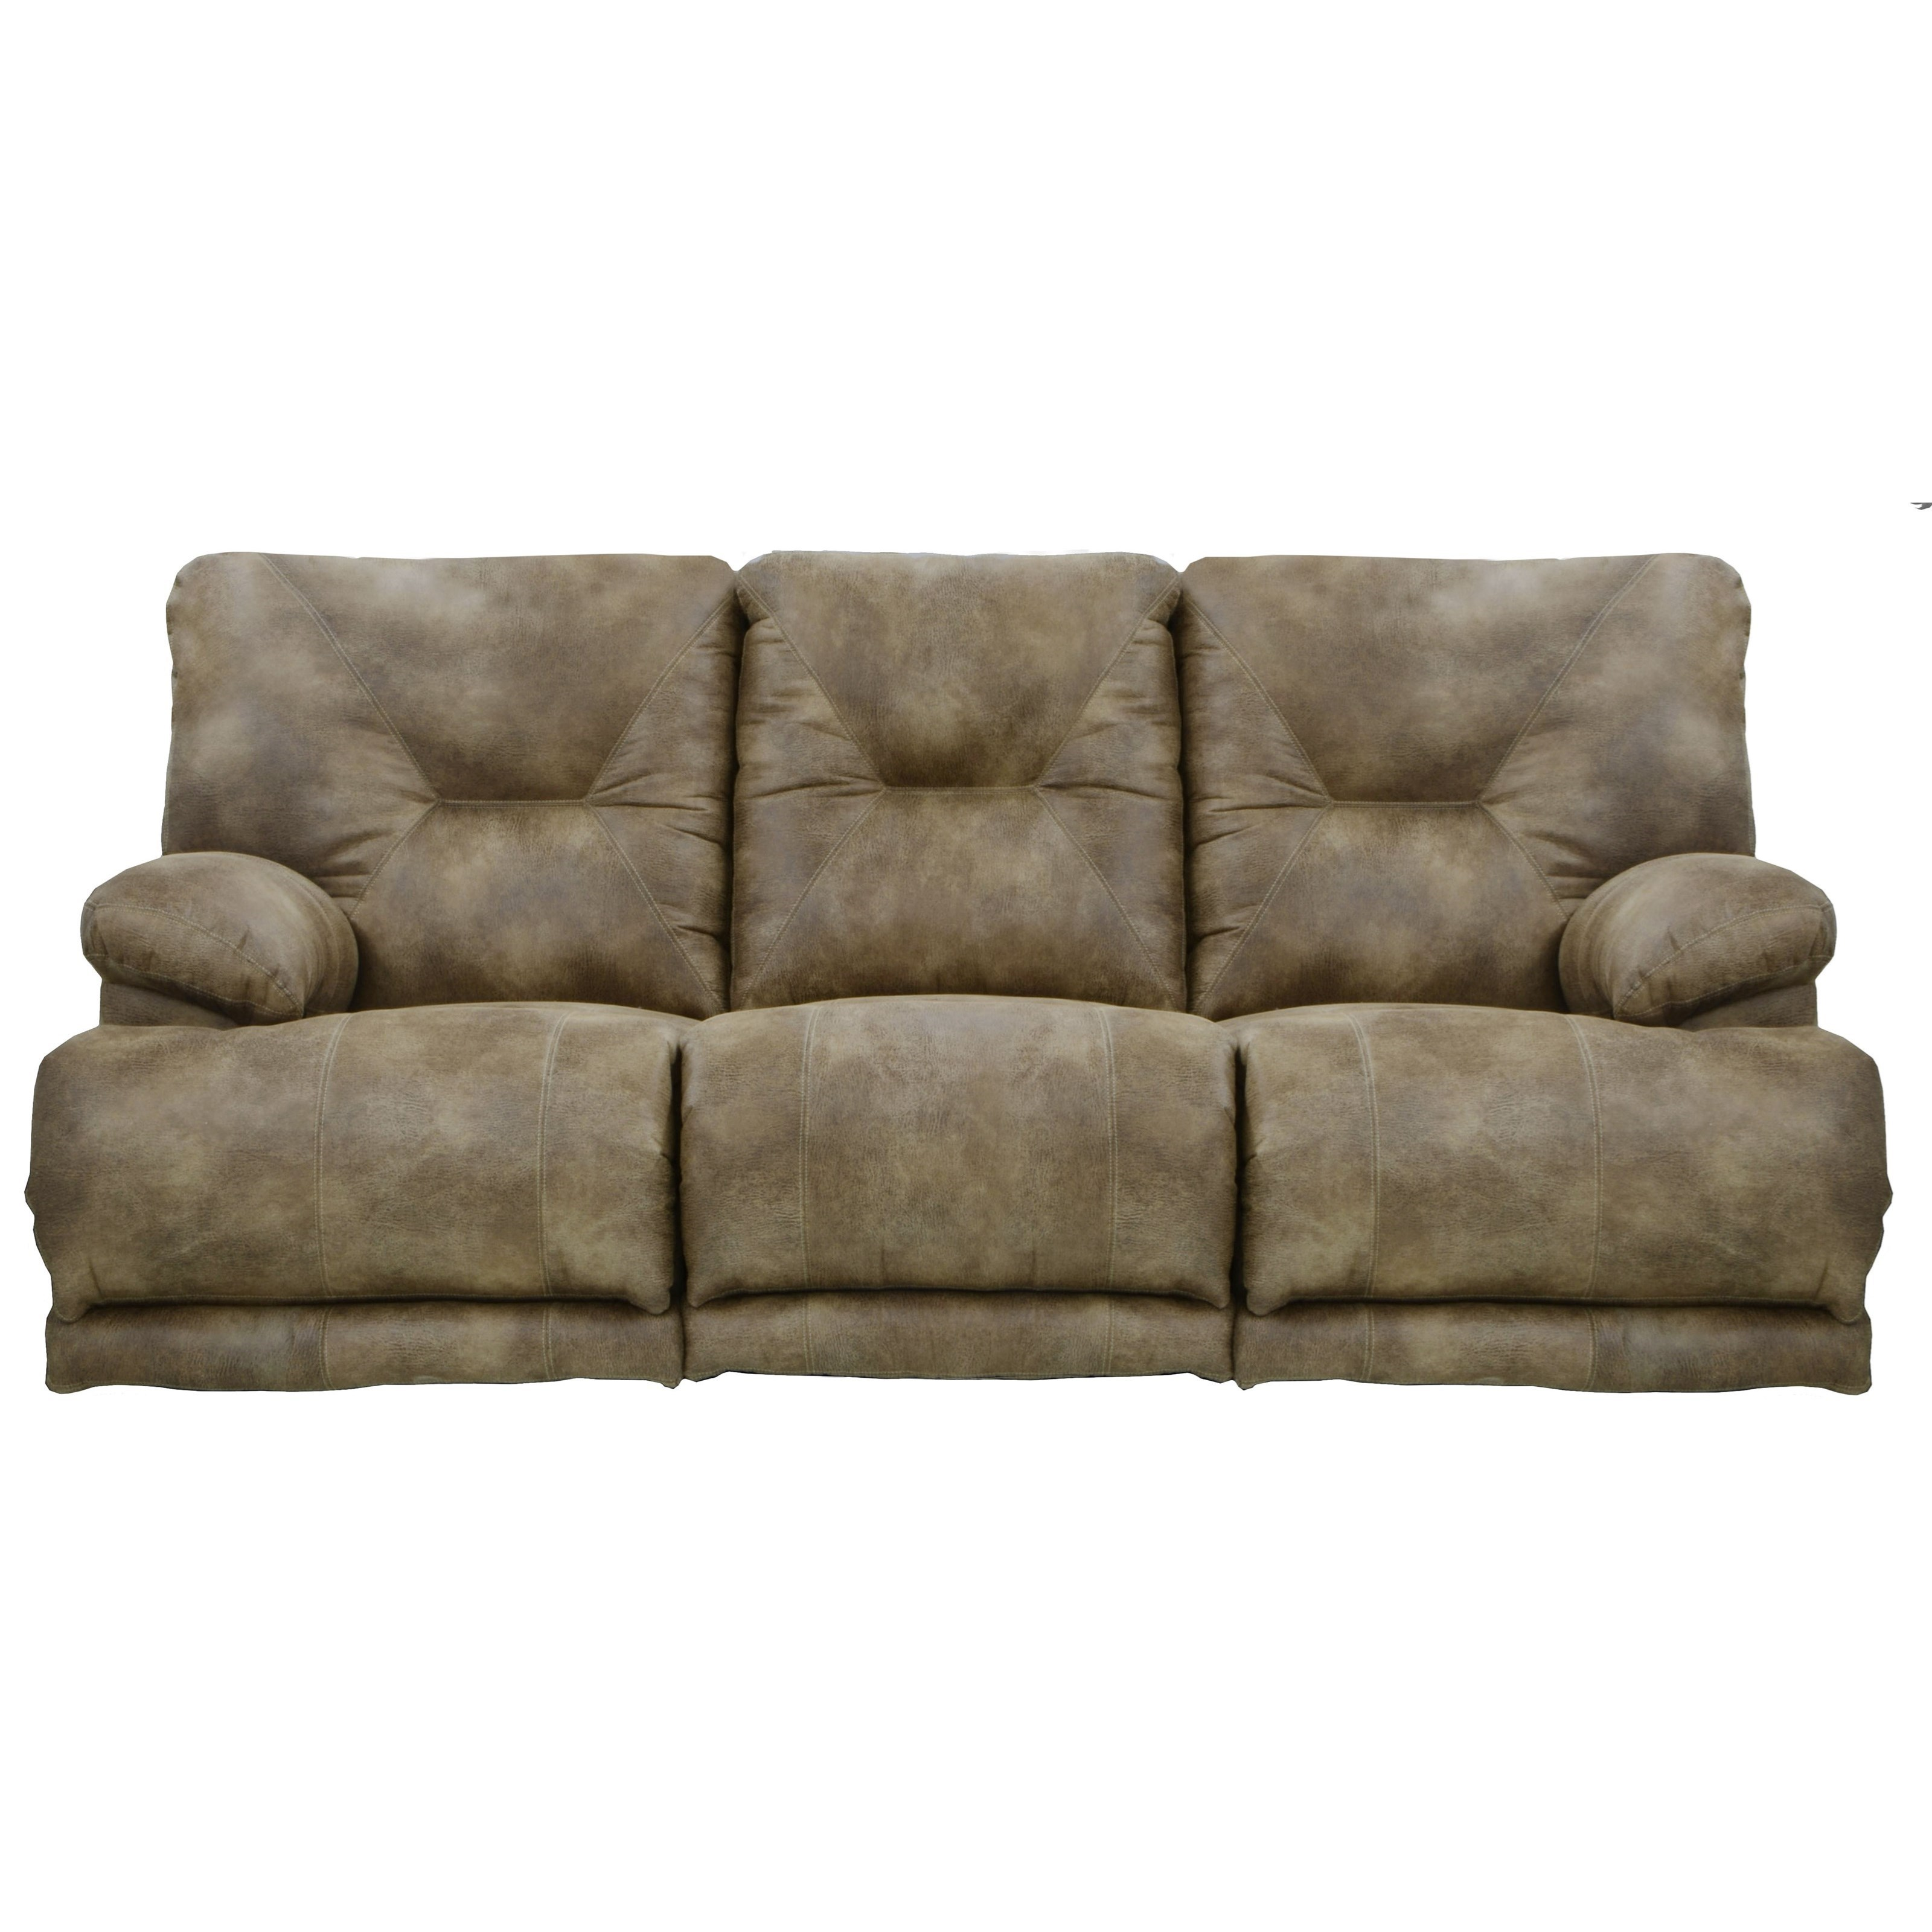 3 Seat Lay Flat Reclining Sofa With Fold Down Middletable By Catnapper Wolf And Gardiner